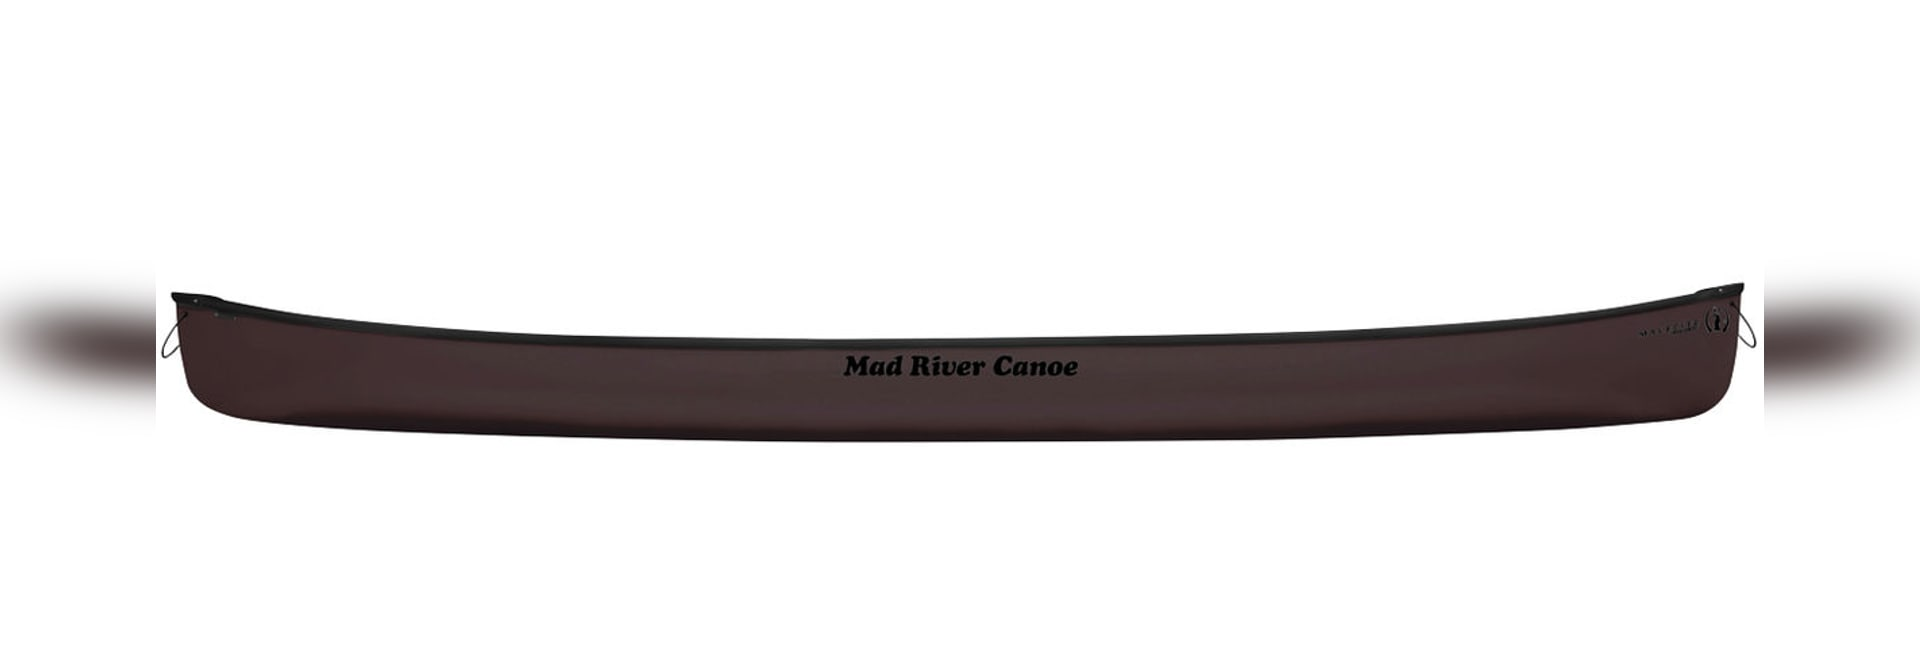 NEW: touring canoe by Mad River - Mad River